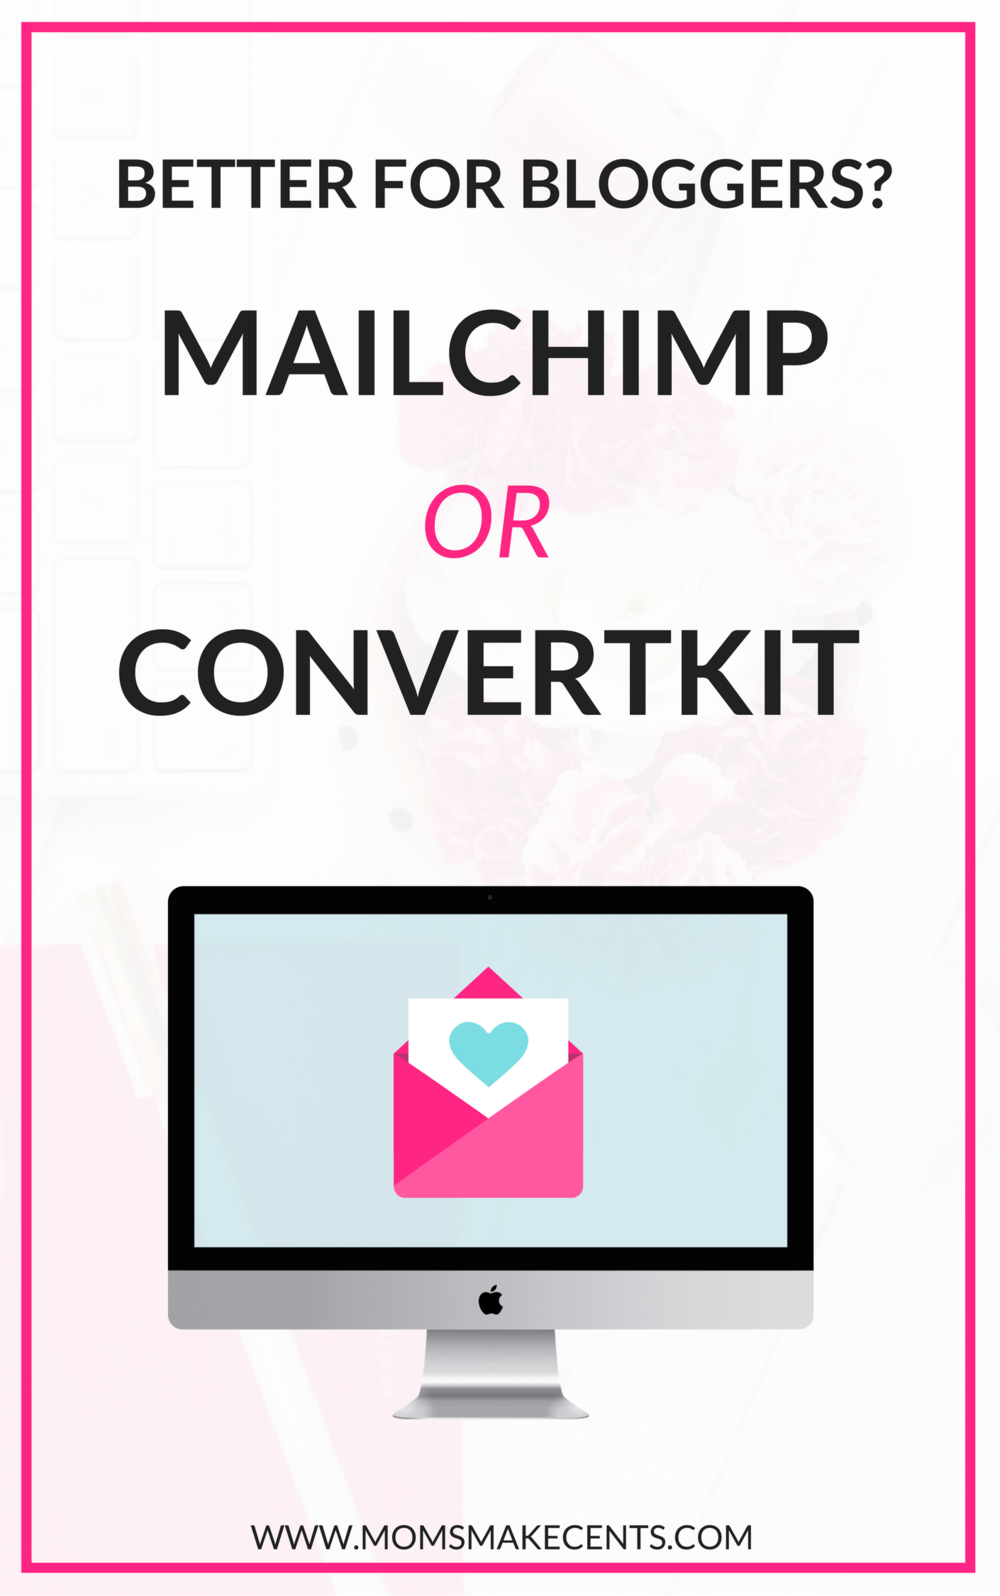 I wish I had just started with ConvertKit in the beginning! The features are so much better. I am able to send my reader what they actually want to read. Plus, I'm not being double billed like when I was on Mailchimp. So glad I read this comparison of MailChimp vs. ConvertKit.